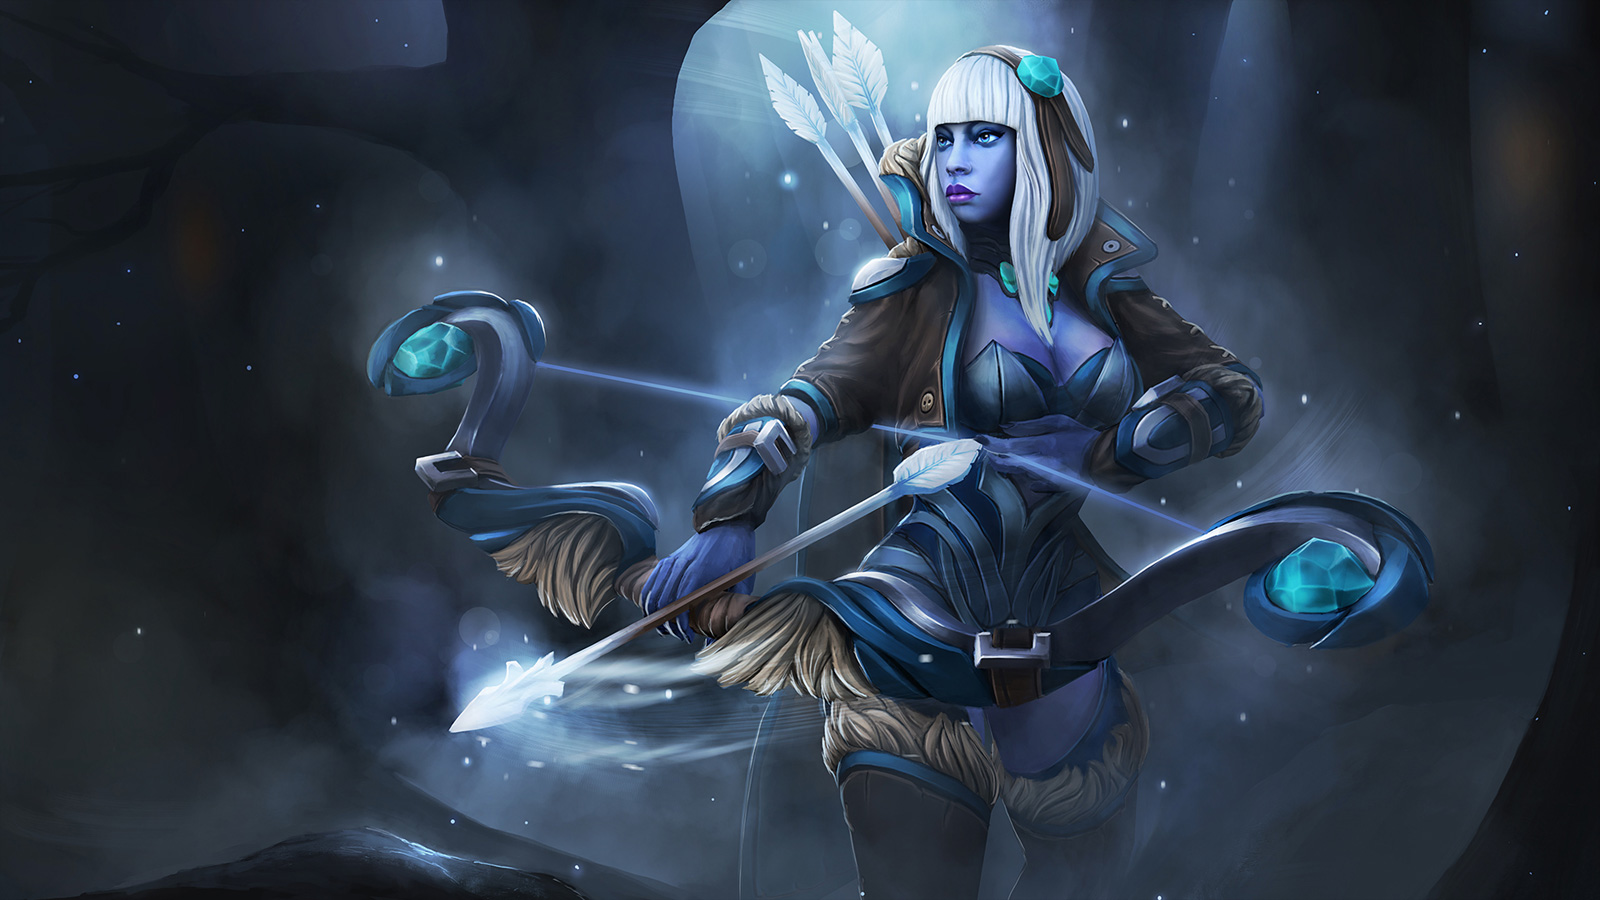 20 Drow Ranger Pictures And Ideas On Stem Education Caucus